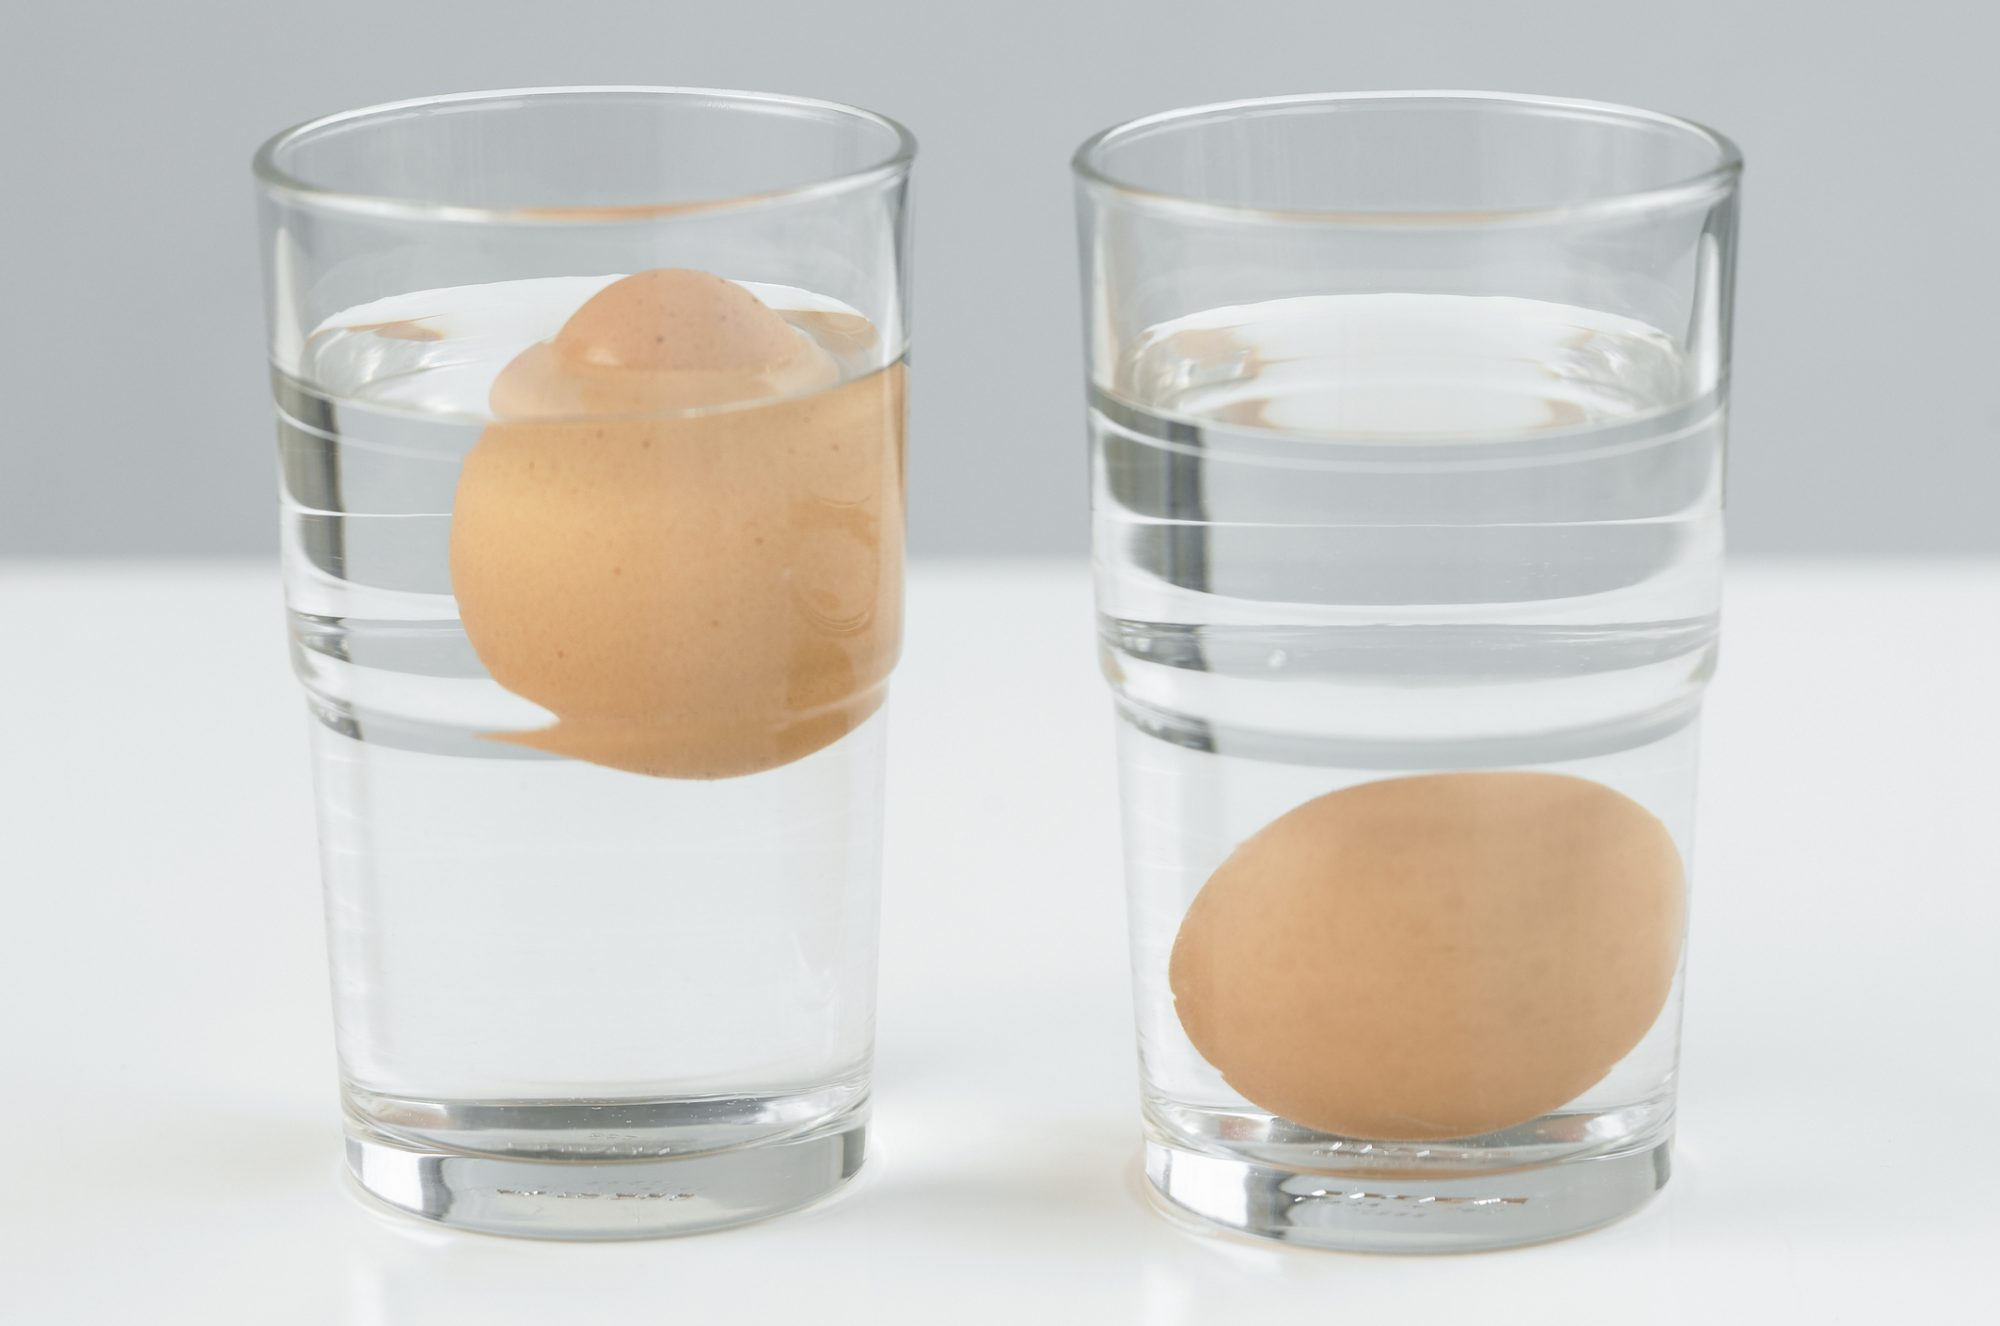 4 Easy Ways to Tell if an Egg Has Gone Bad